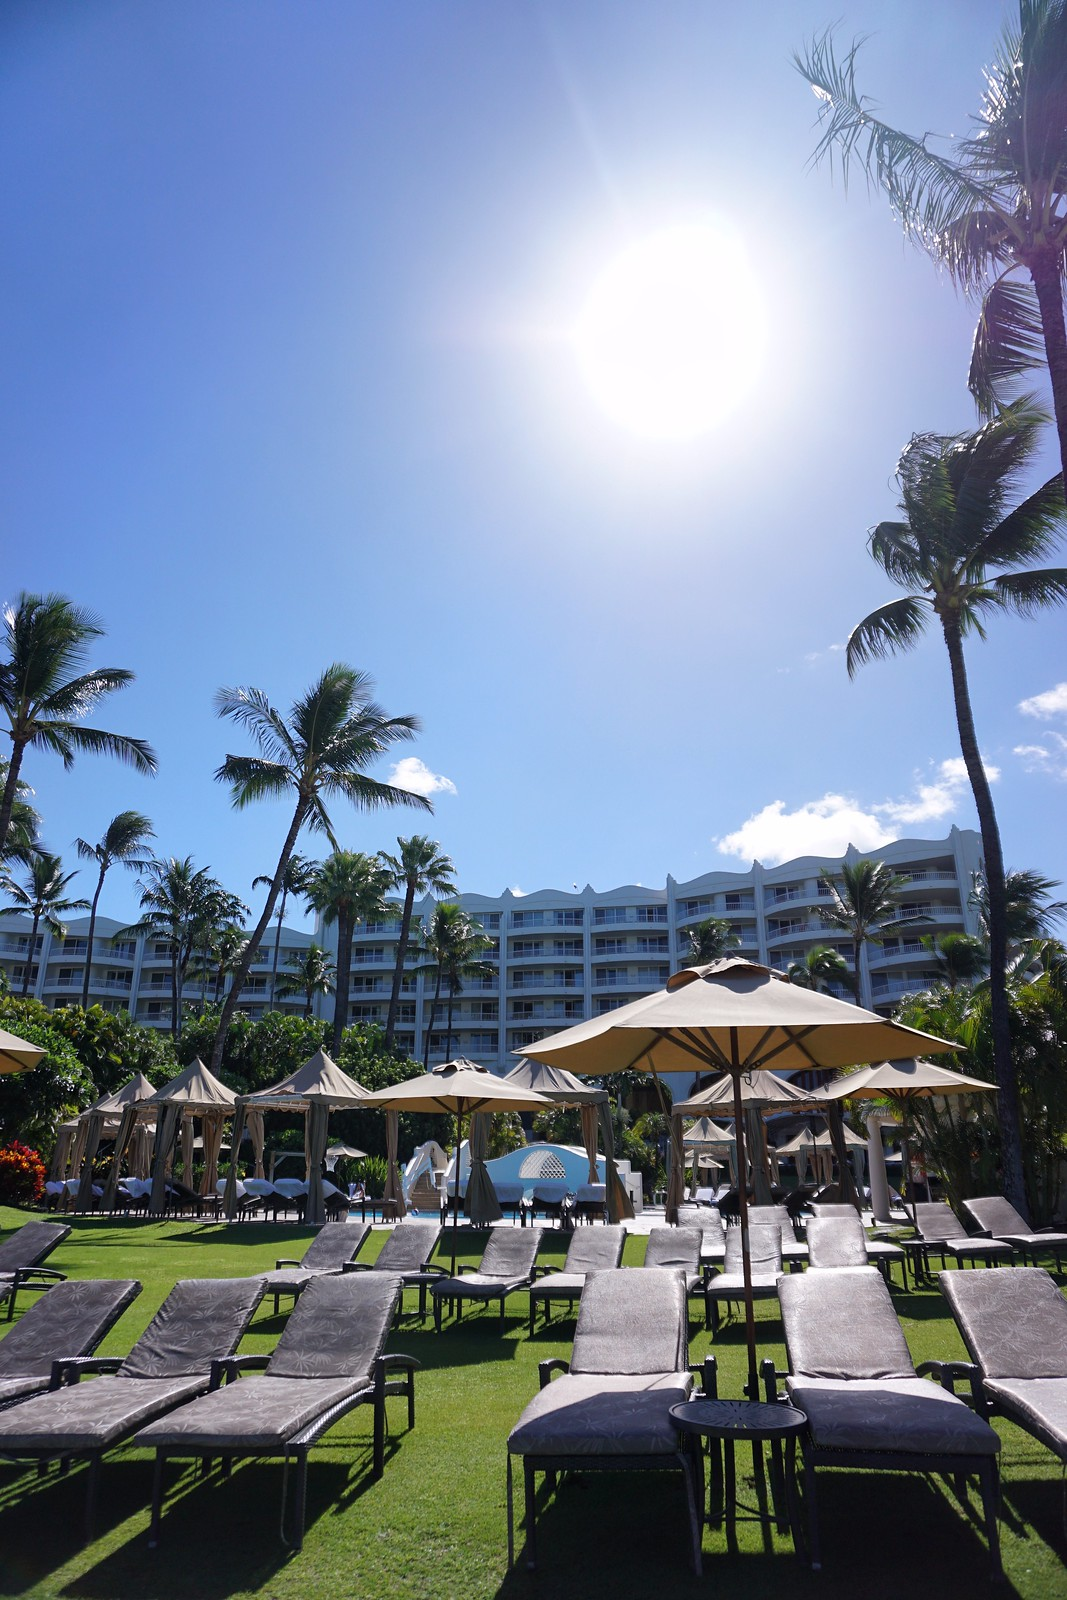 Hotel Review Fairmont Kea Lani BEST Hotel in Maui Where to Stay on Maui Hawaii